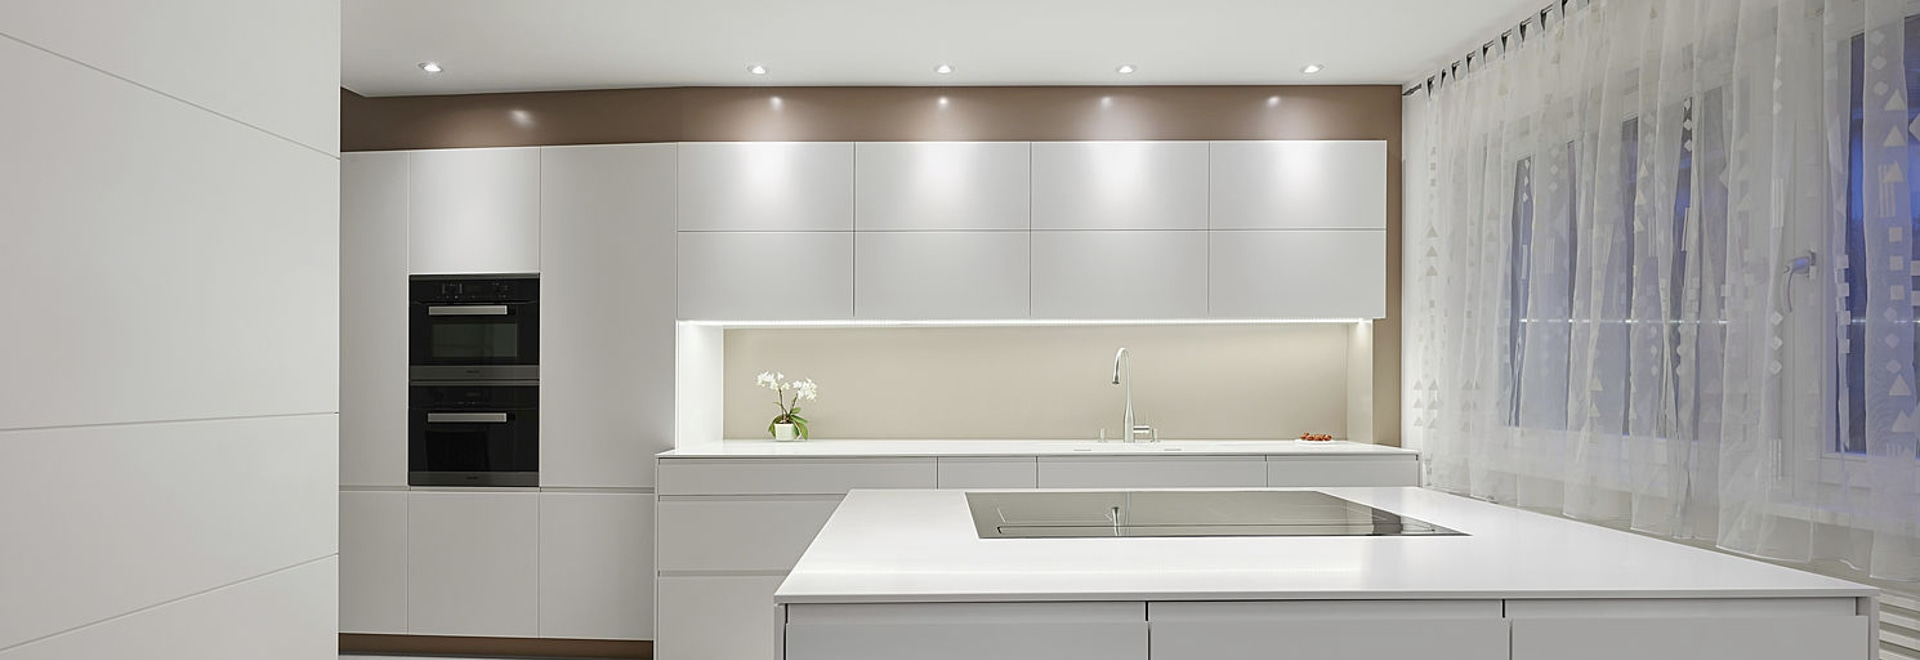 The latest Corian(R) kitchen from Planit - PLANIT